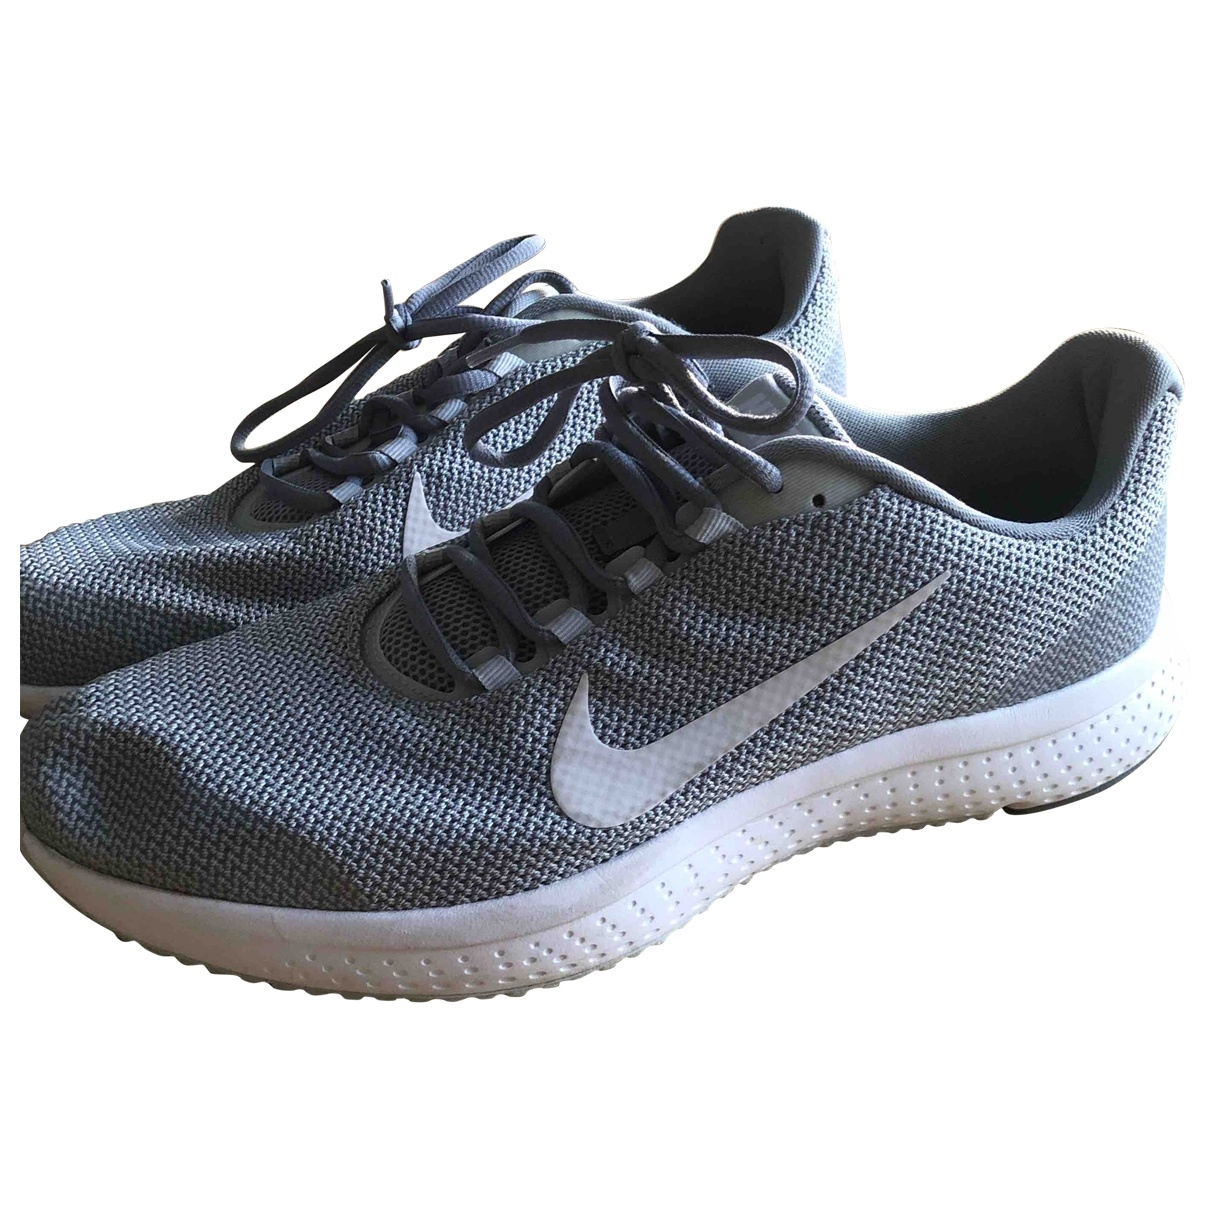 Nike - Baskets Zoom pour homme - gris